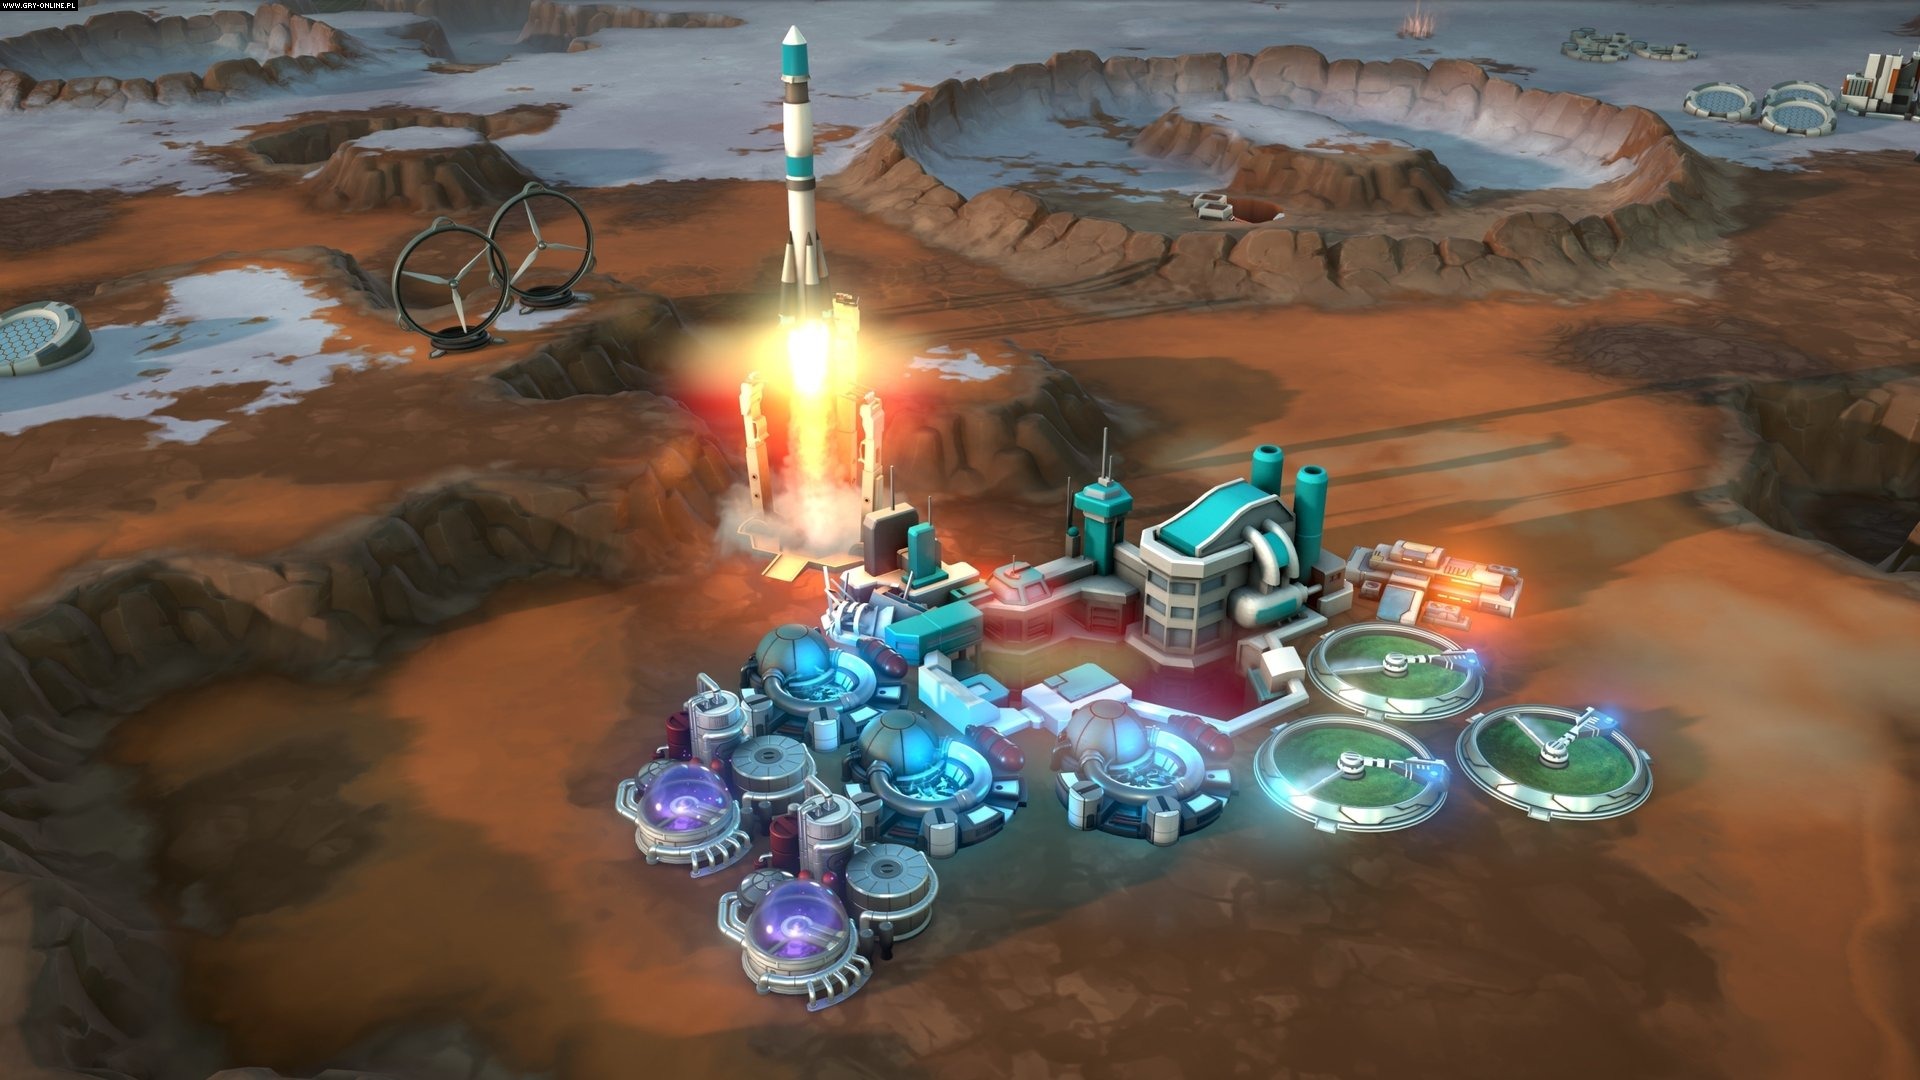 Offworld Trading Company PC Gry Screen 3/9, Mohawk Games, Stardock Corporation